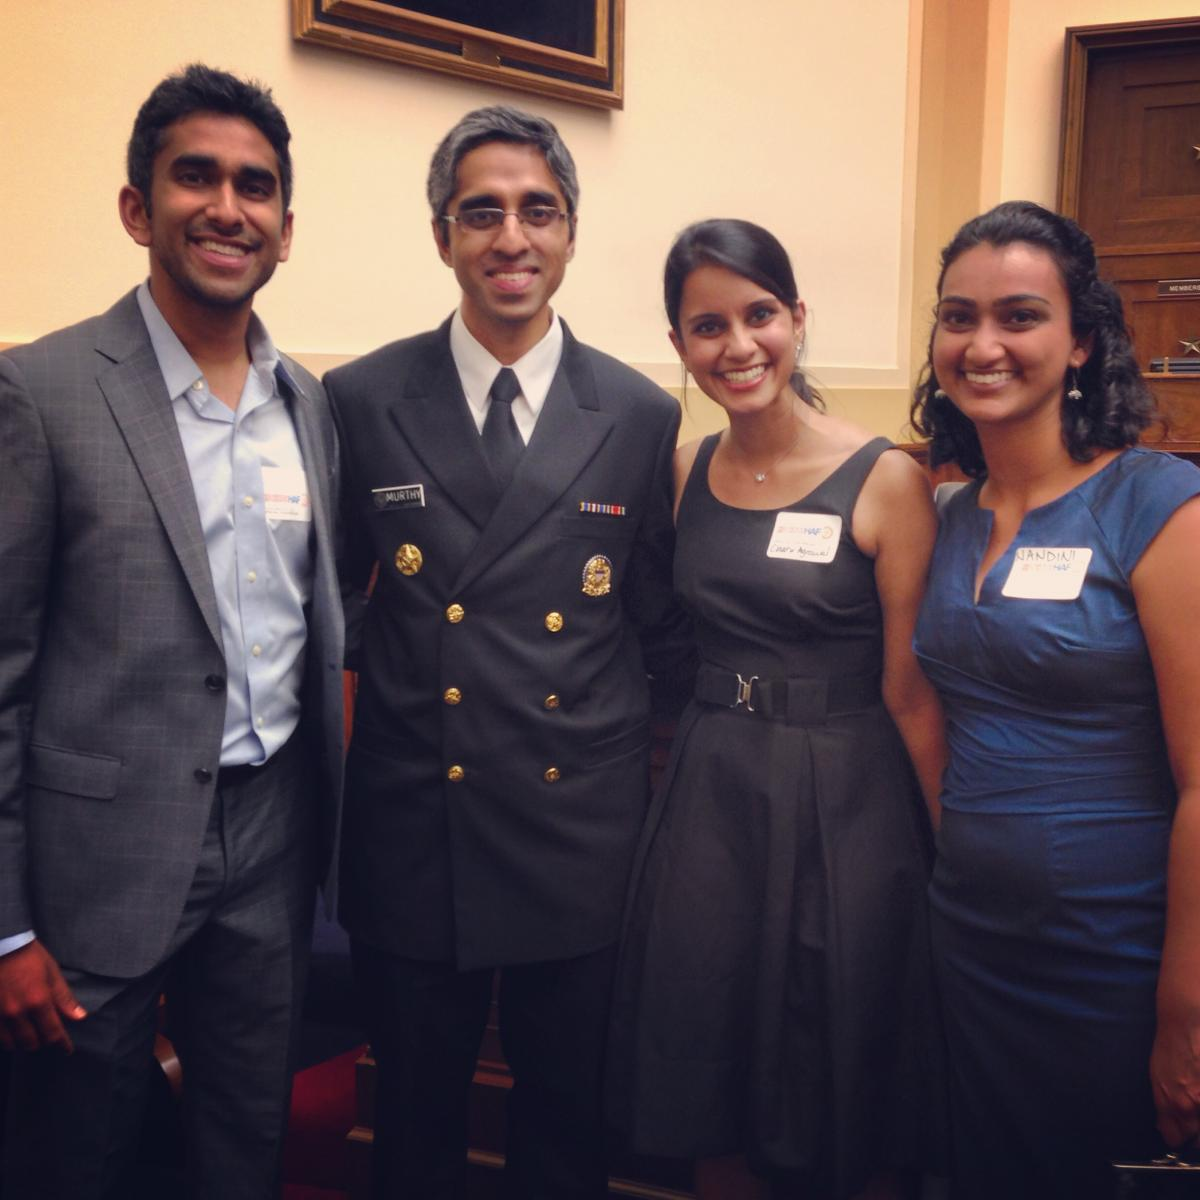 Three students stand side by side with the Surgeon General of the U.S.